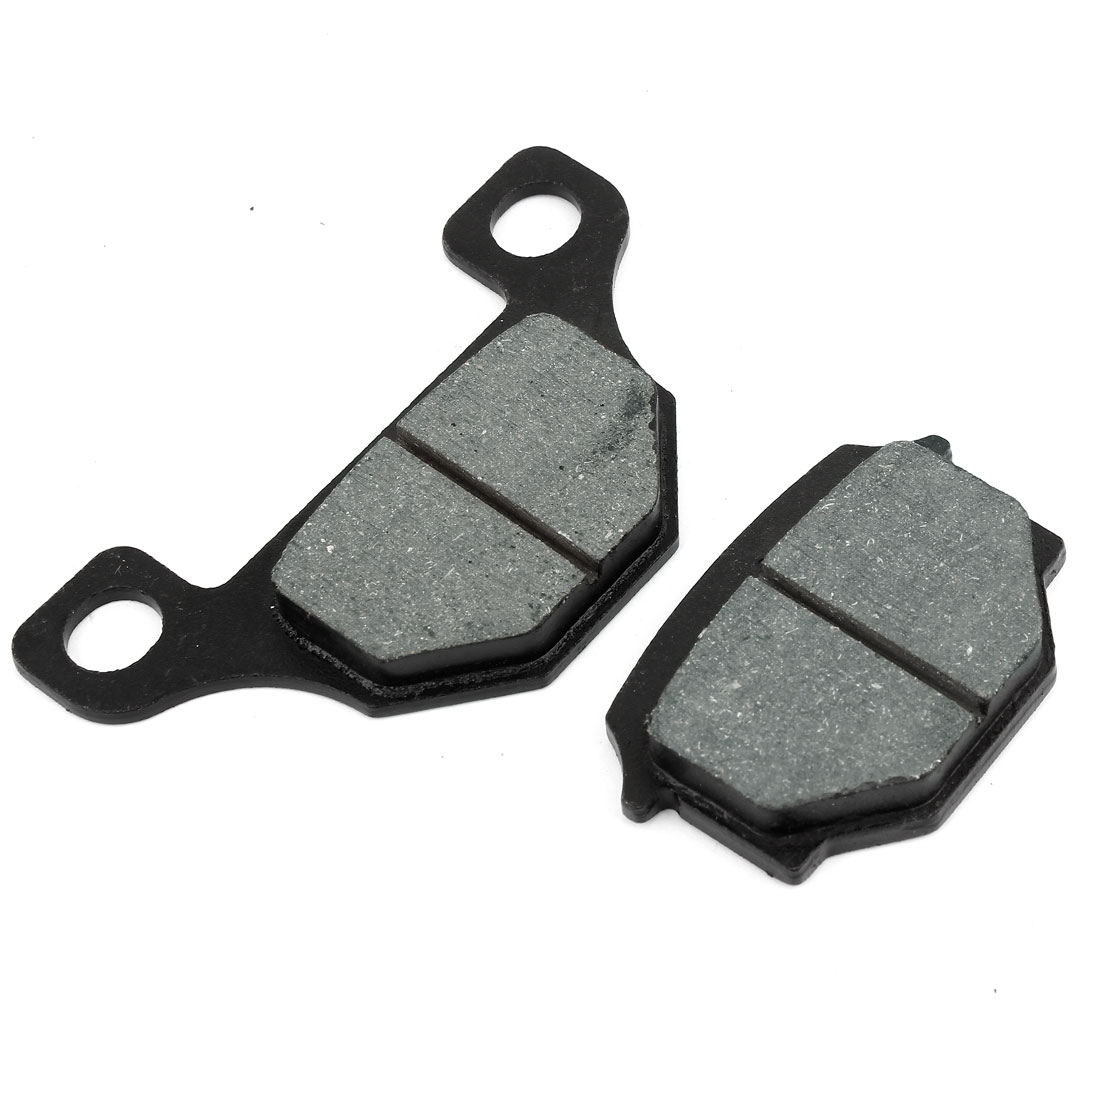 2 Pcs Black Motorcycle Wearproof Fiber Front Brake Pads GS125